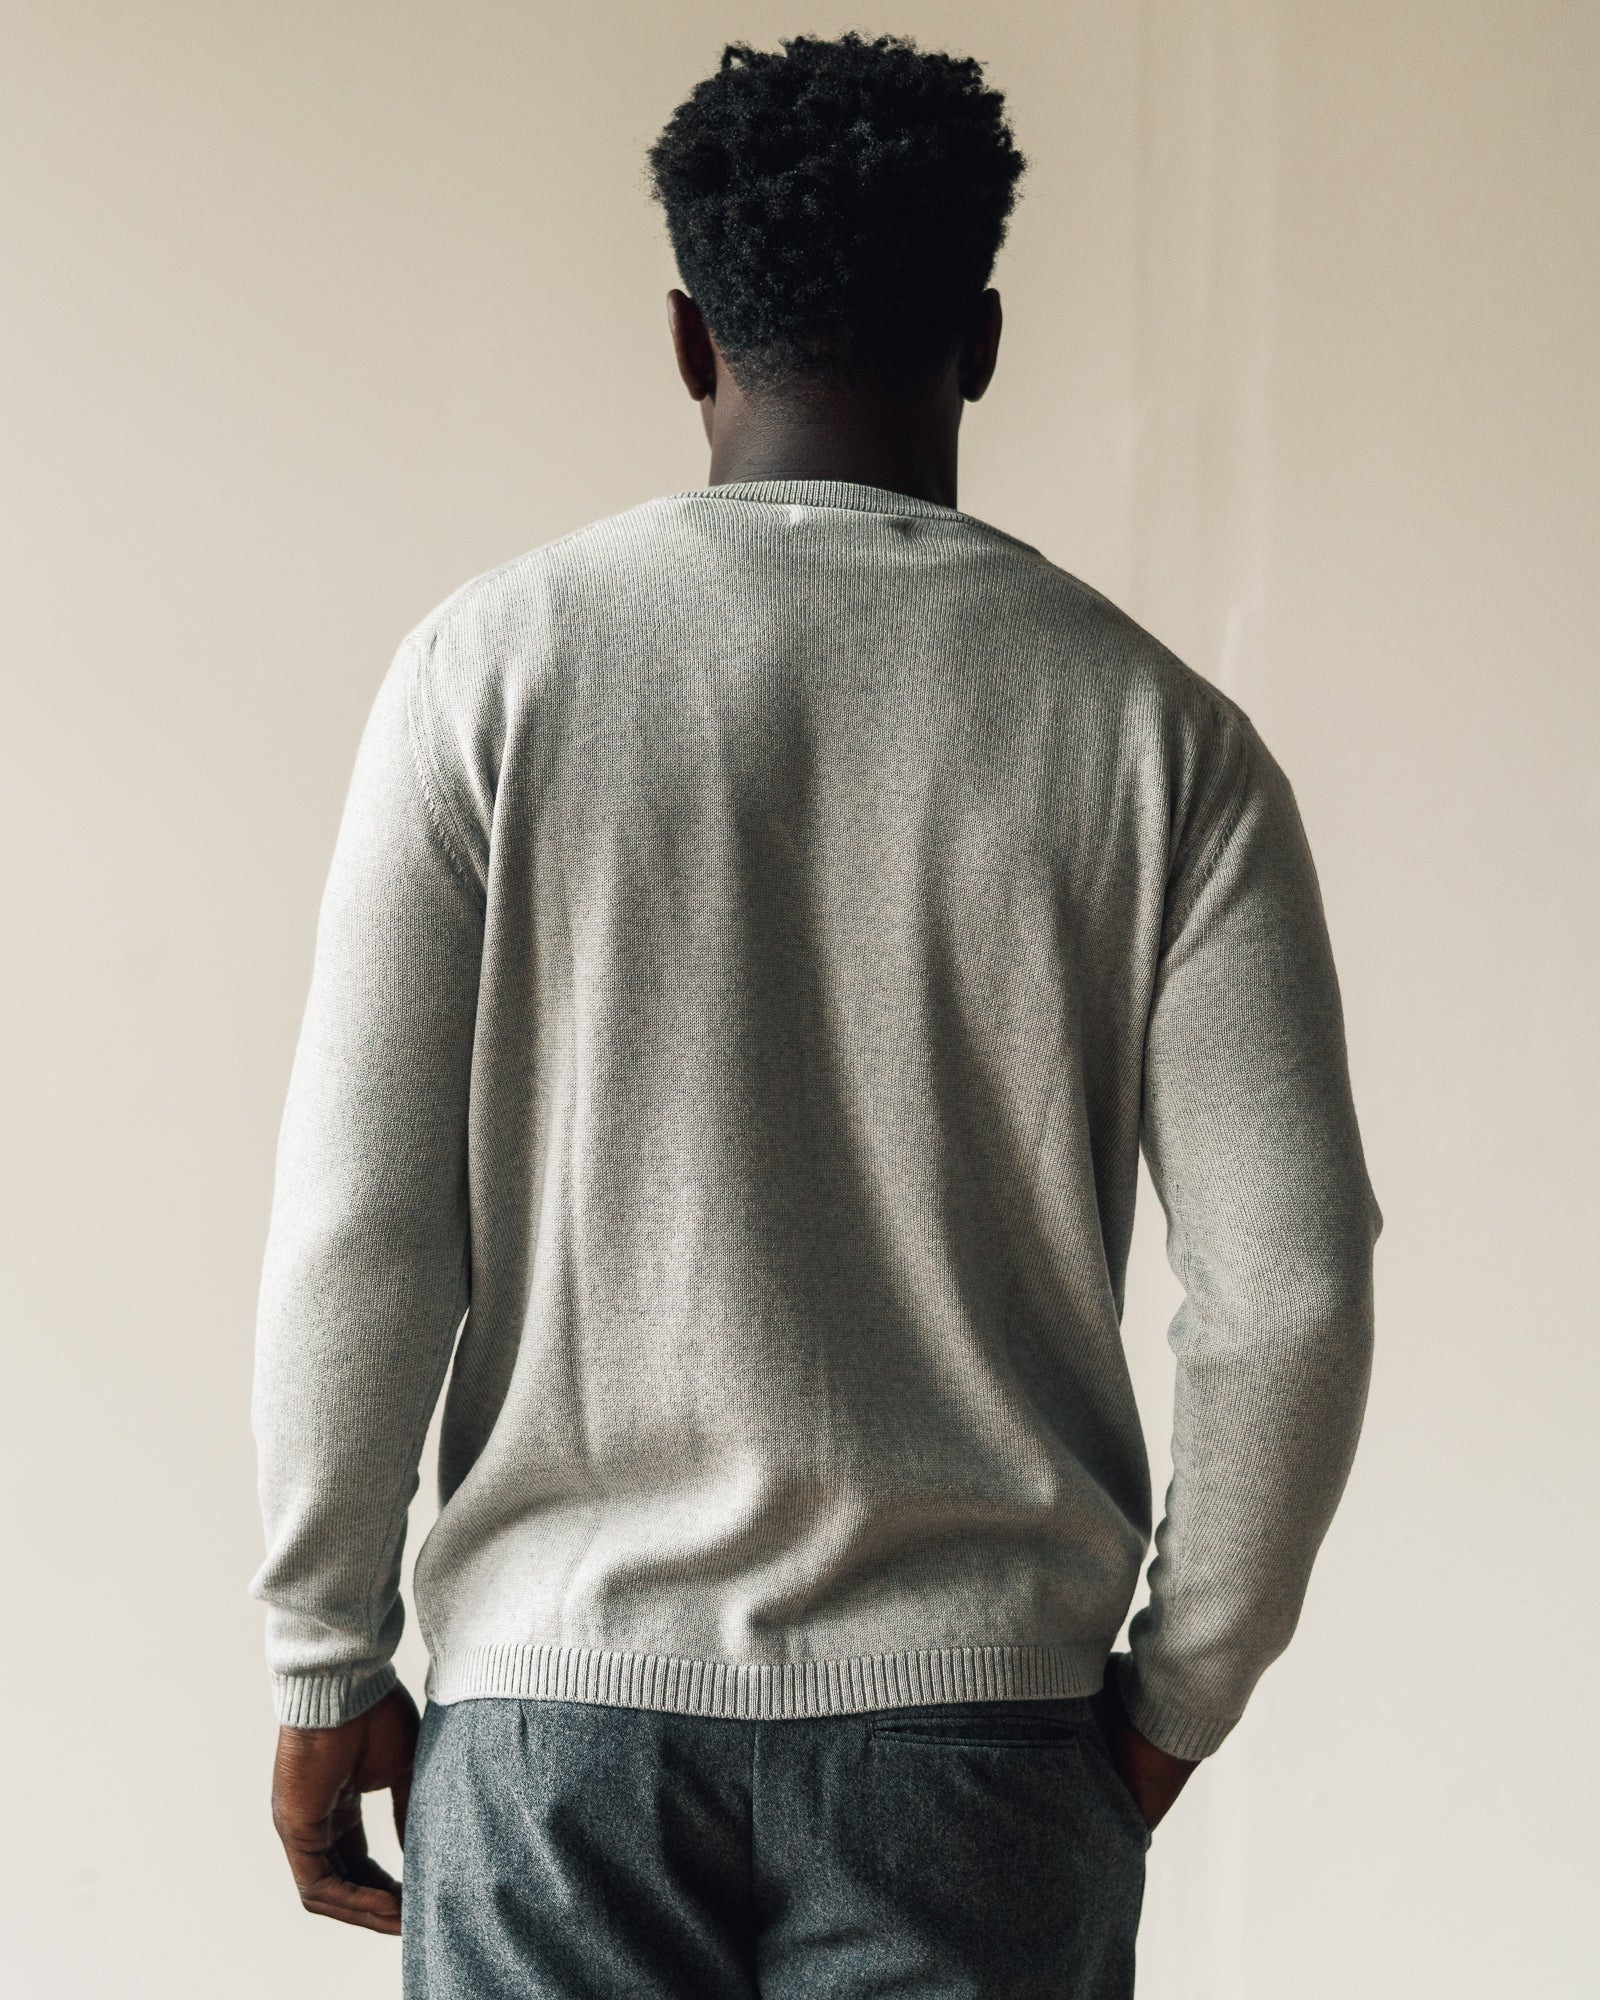 Merz b. Schwanen Relaxed Pullover with Pocket, Grey Melange